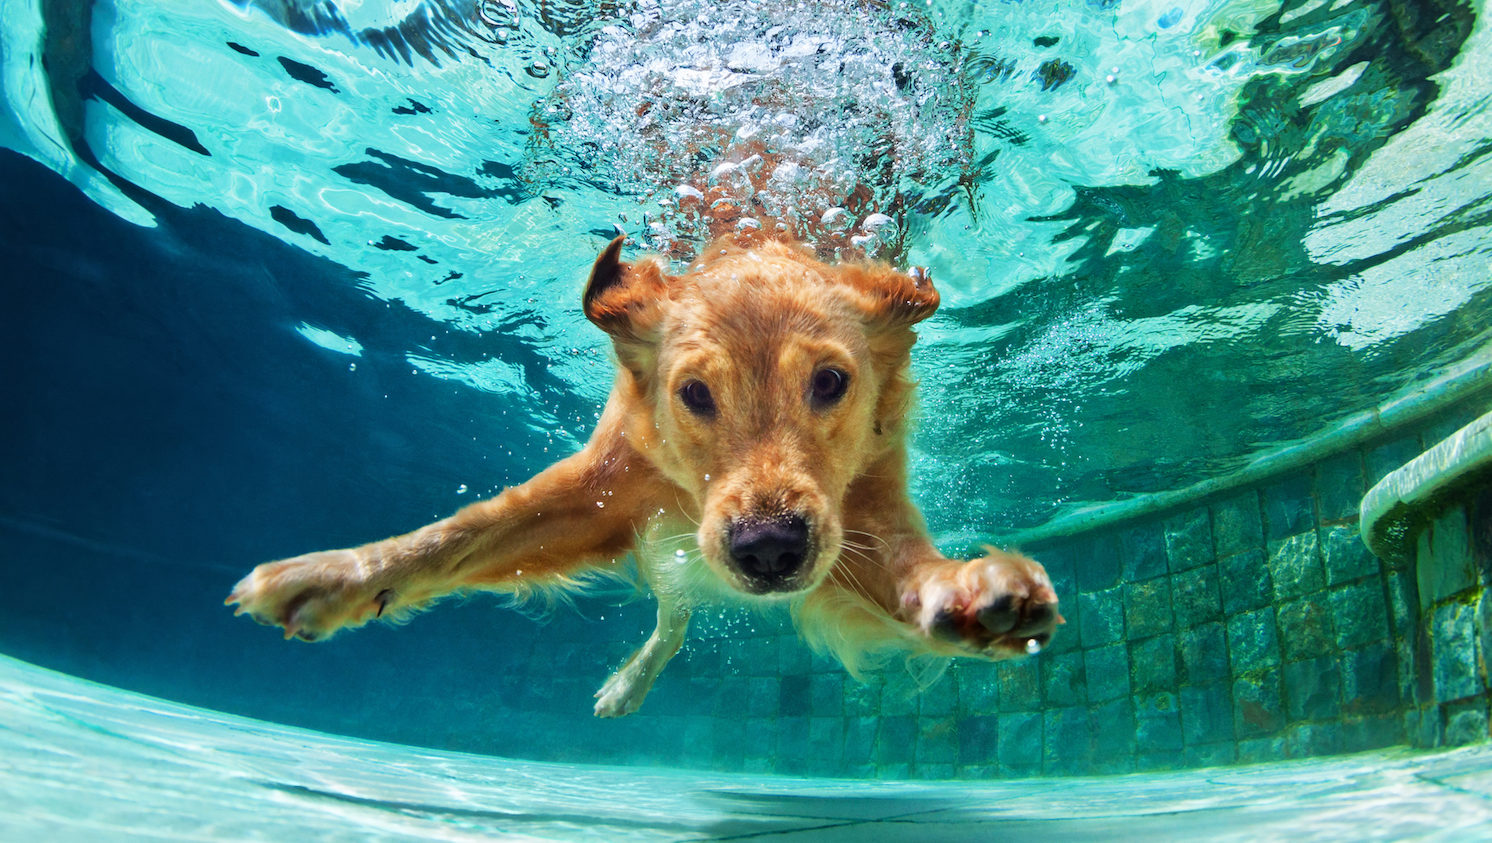 Take your pup for a swim at liberty lagoon s end of summer dog pool pawty aug 26 for How to train your dog to swim in the pool